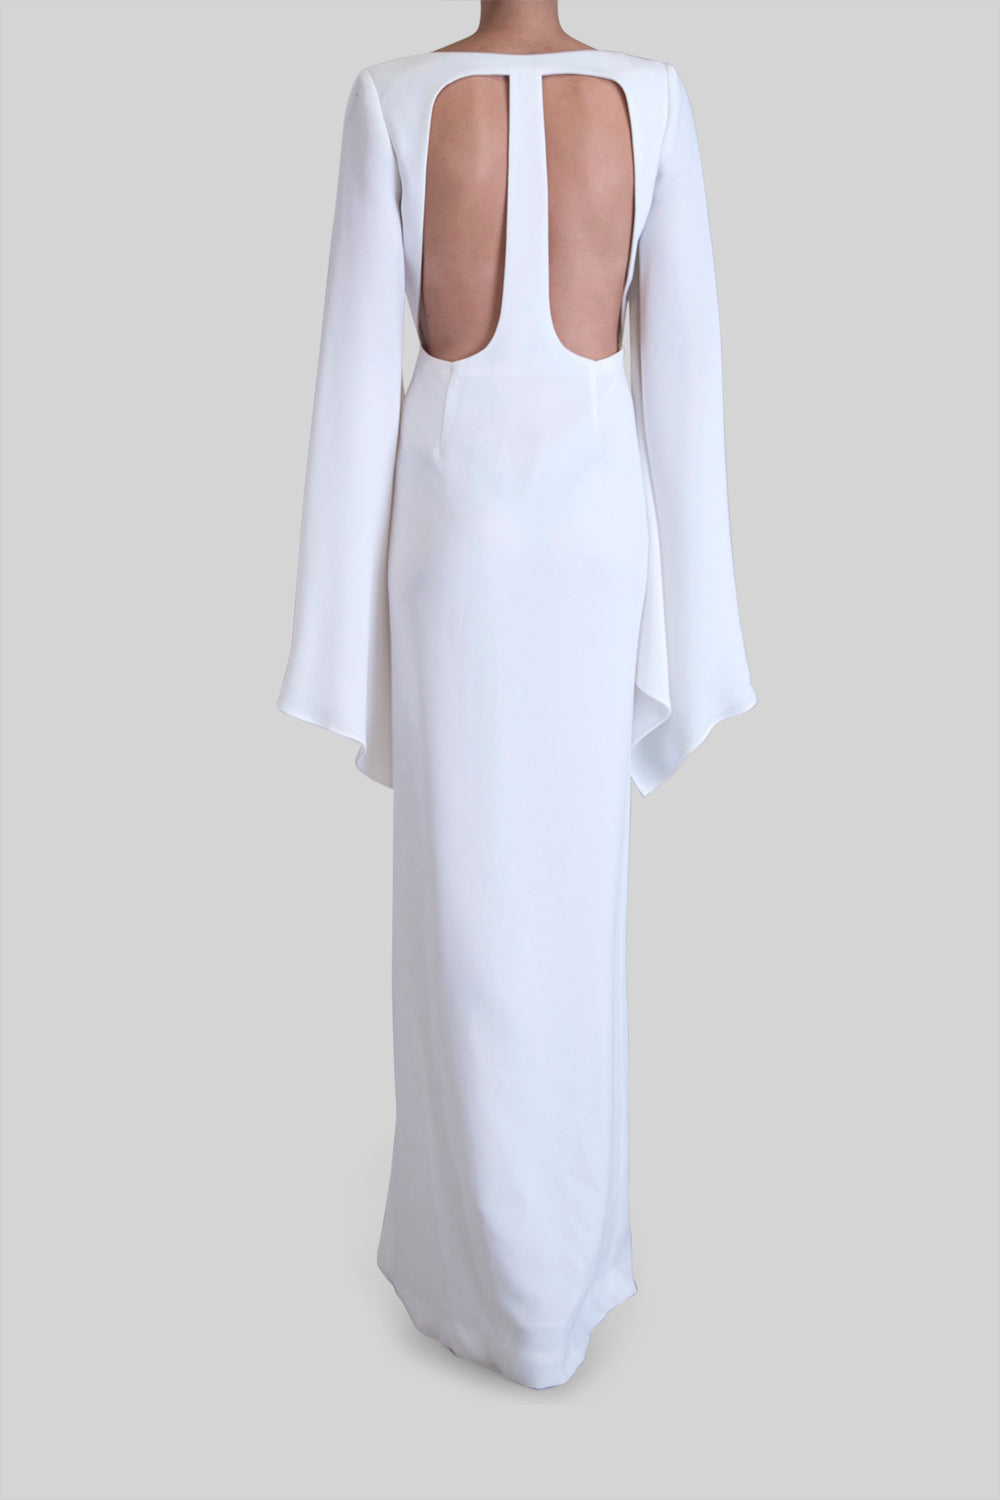 WHITE CREPE ETERNAL LOVE GOWN